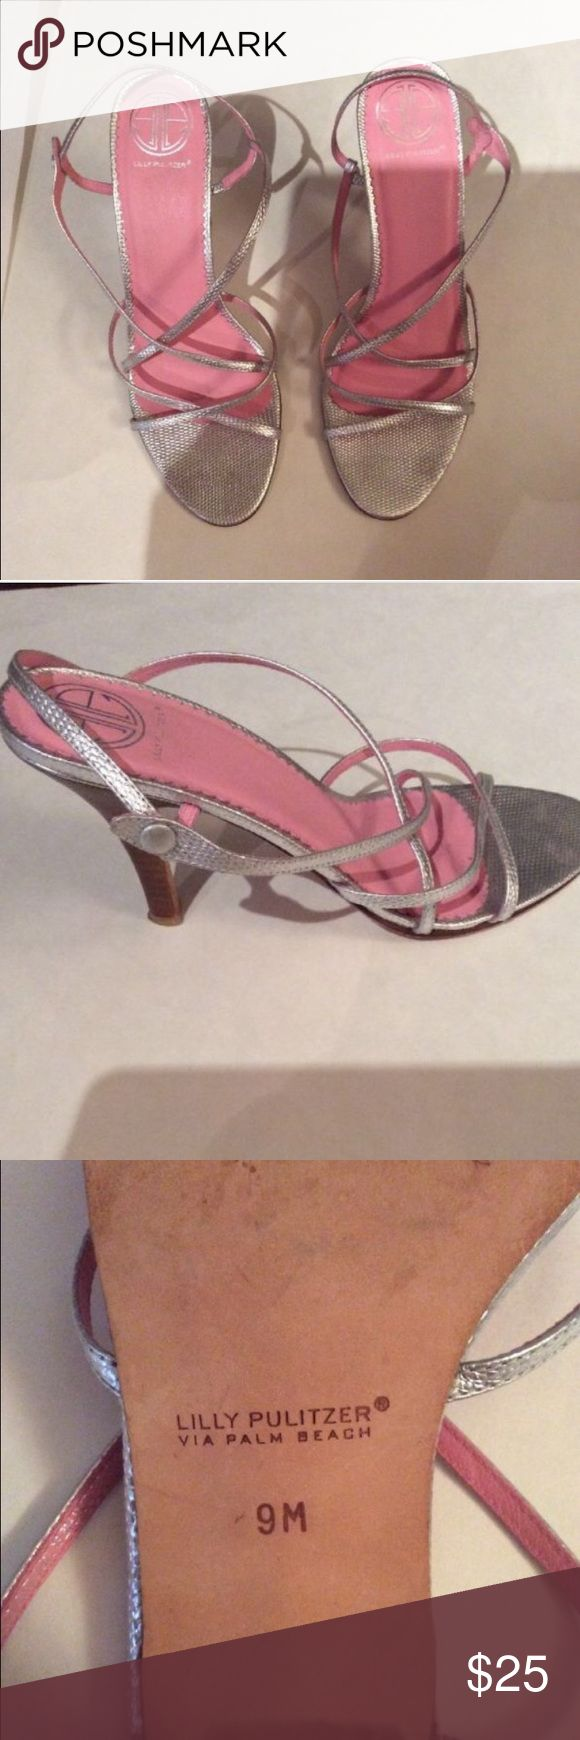 Lilly Pulitzer Silver Metallic Strappy High Heel EUC Authentic Lilly Pulitzer Silver Strappy party heels. Wear on the bottom of the sole, as pictured. When worn, they look in absolutely brand new condition though! Retailed for $150. Heel is 3in high Lilly Pulitzer Shoes Heels